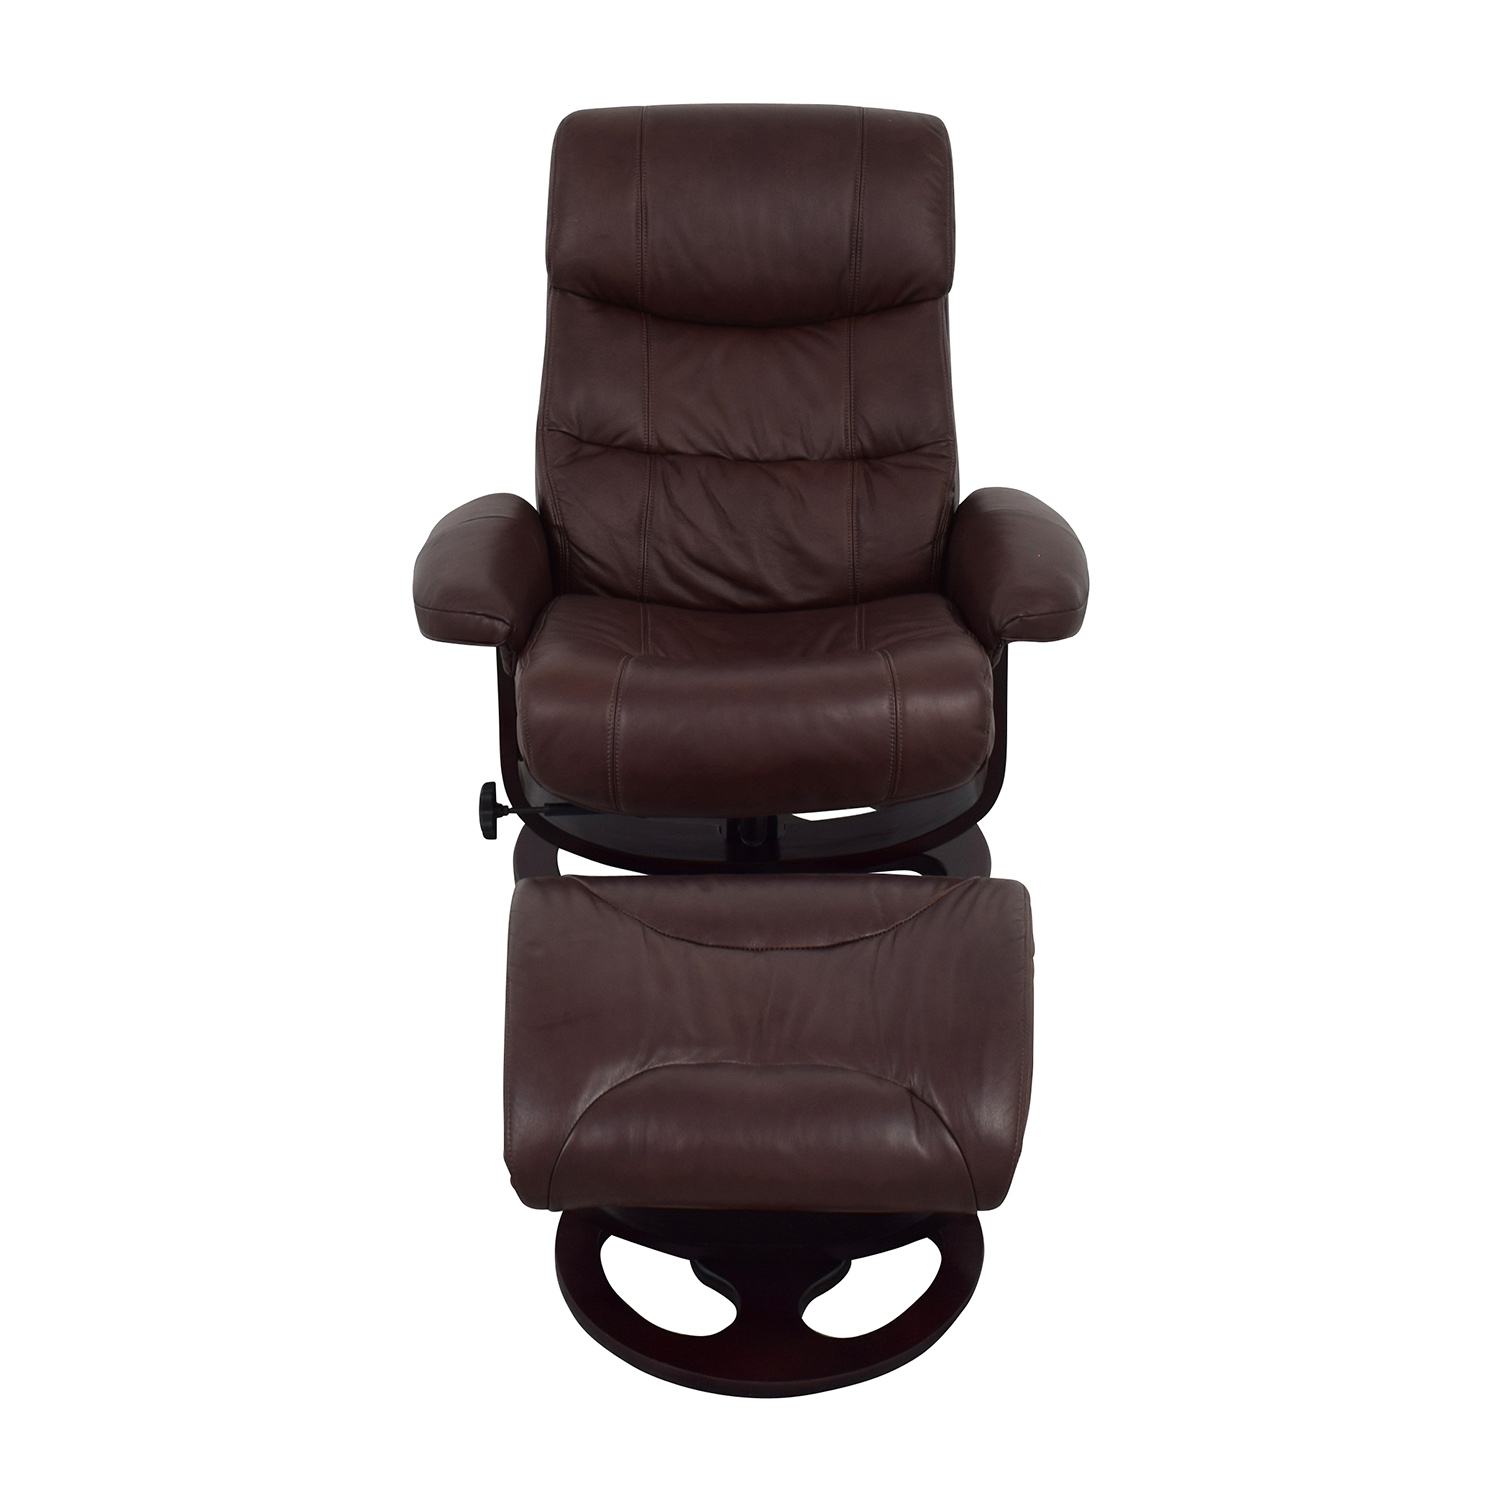 recliner chair with ottoman manufacturers fabric for chairs 59 off macy 39s aby brown leather